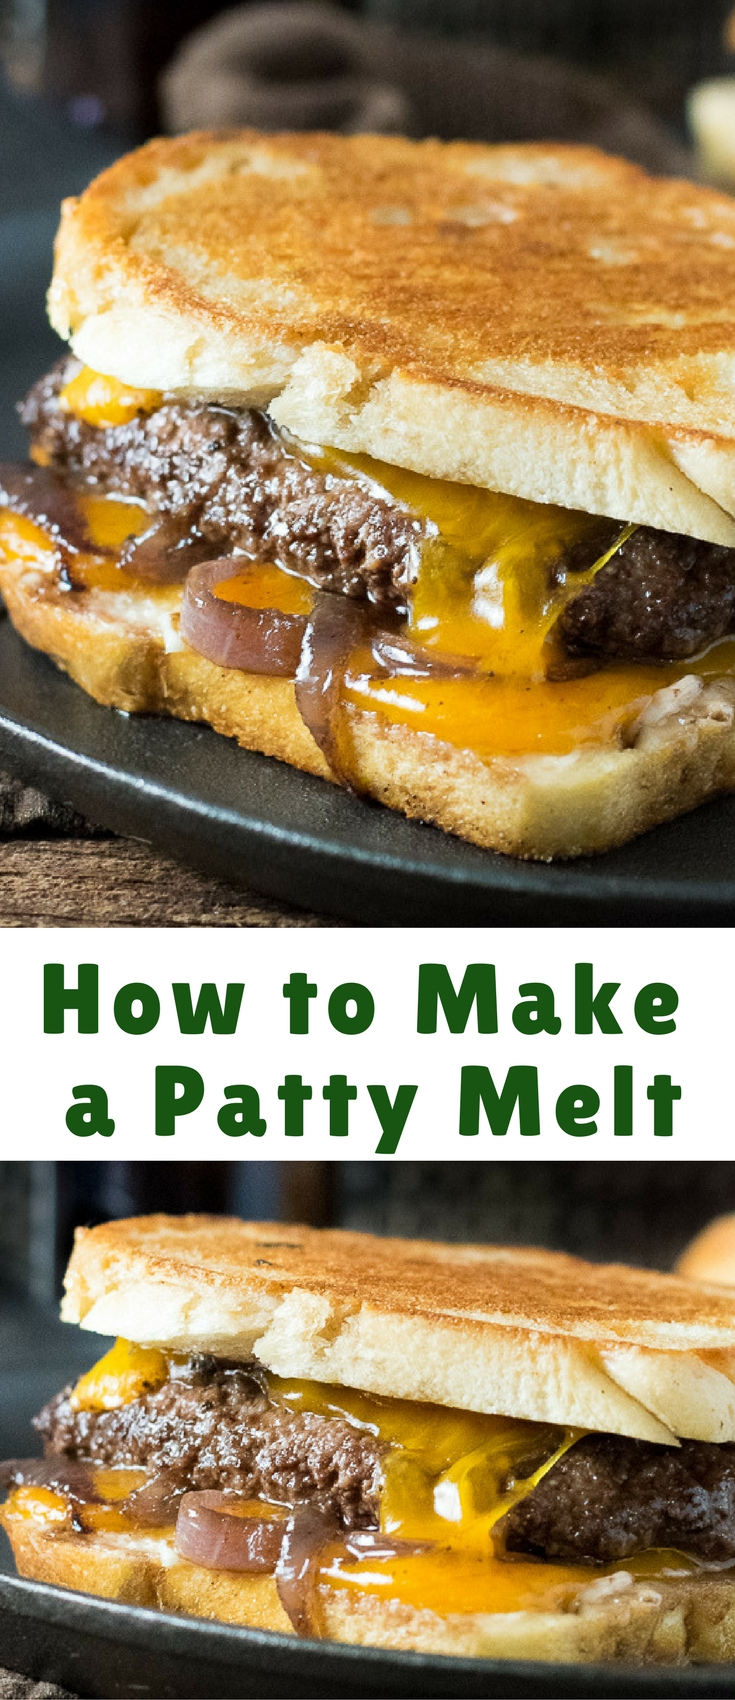 Read this to learn how to make a Patty Melt and you'll soon be slinging out juicy burgers from your kitchen like a short order cook, whenever the craving hits!